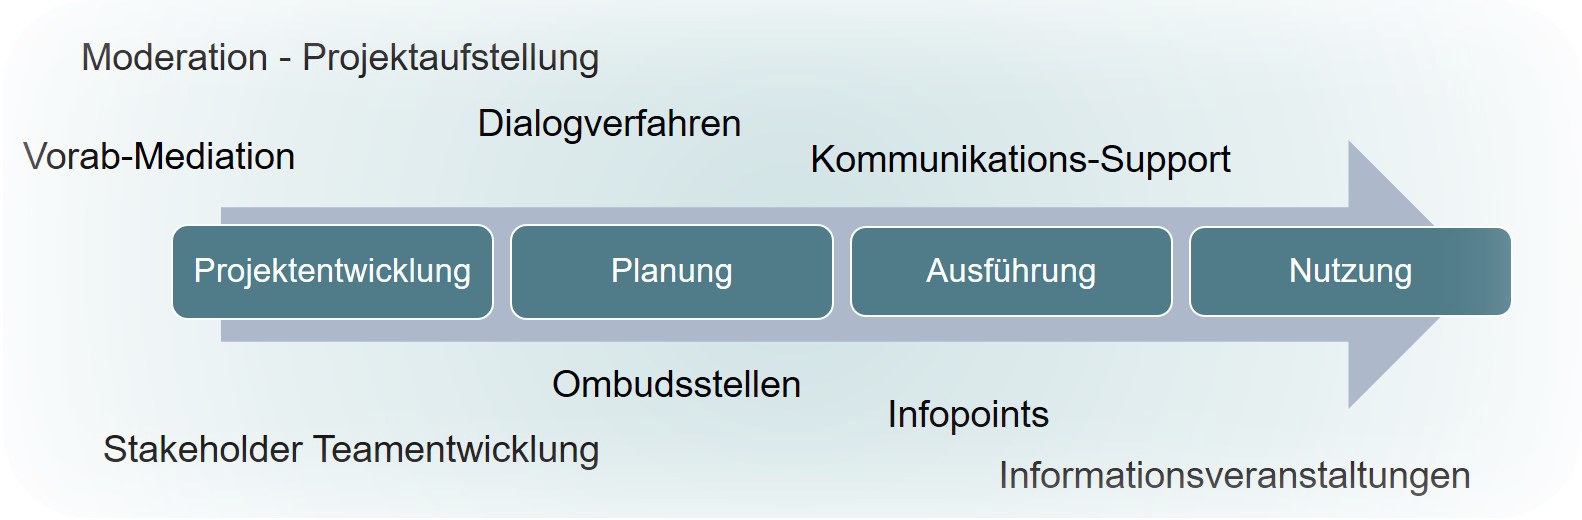 Leistungsbeispiele - Out of the box